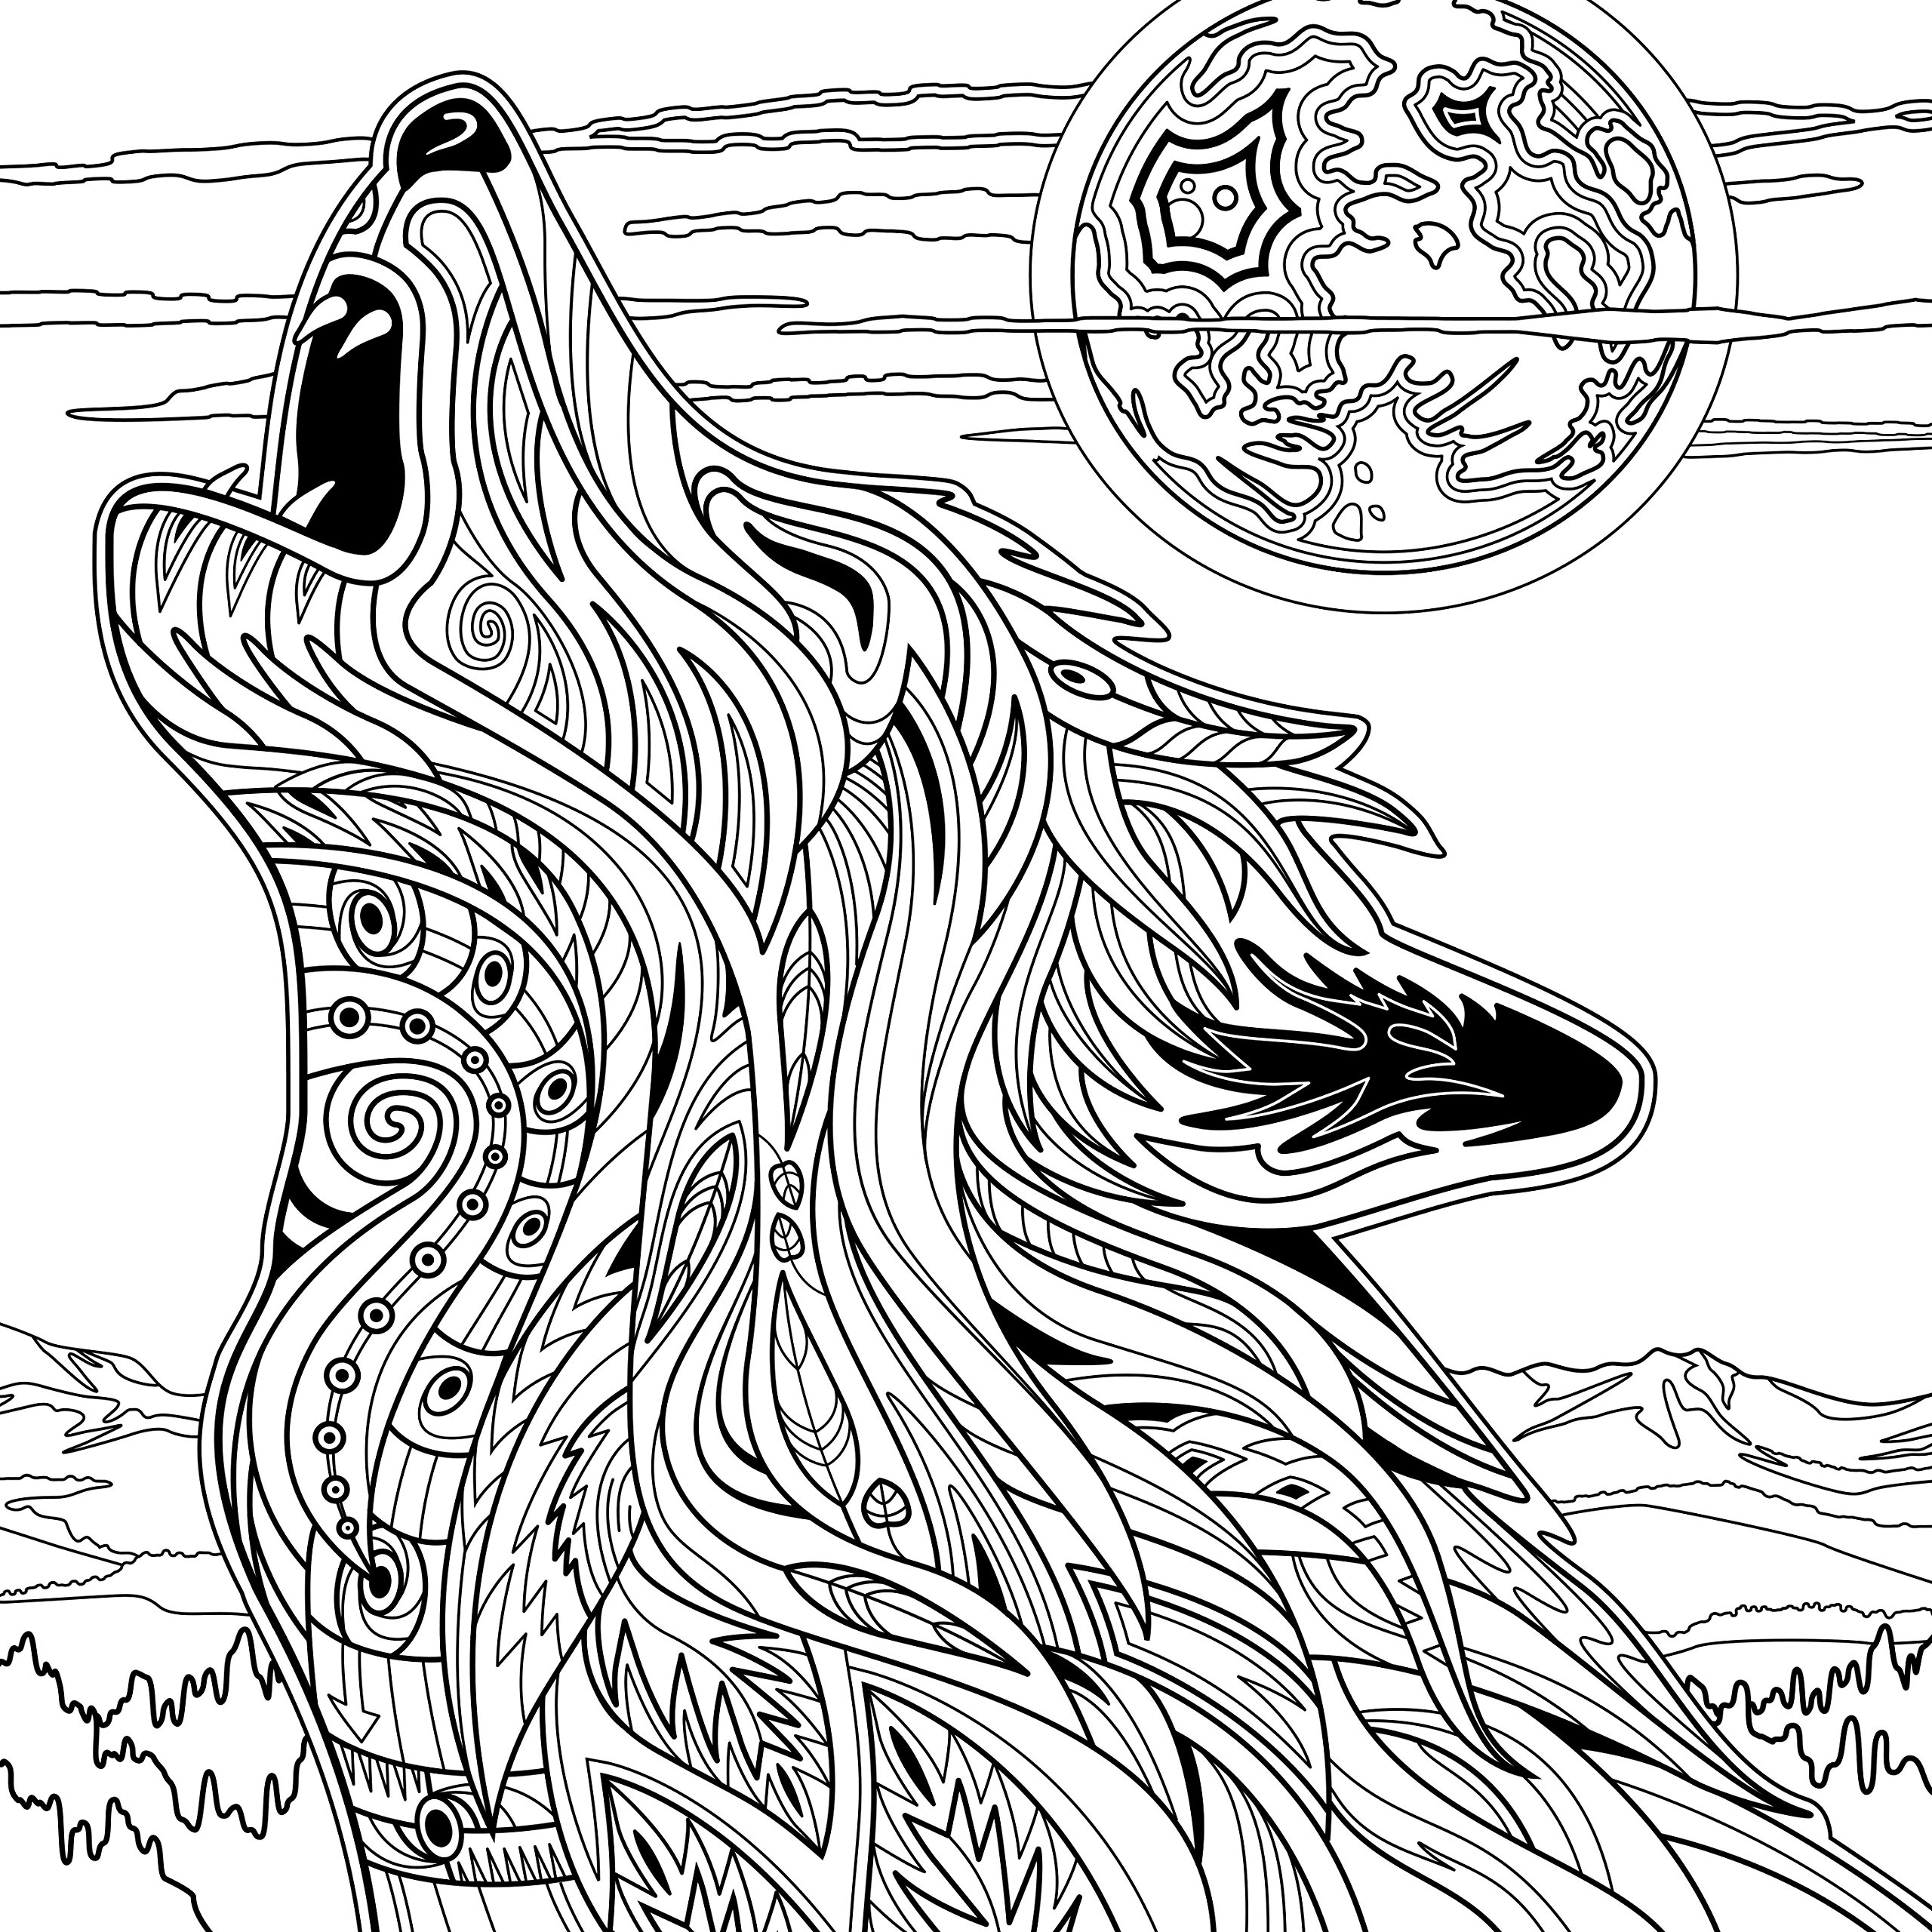 2560x2560 Grown Up Coloring Pages Free Coloring